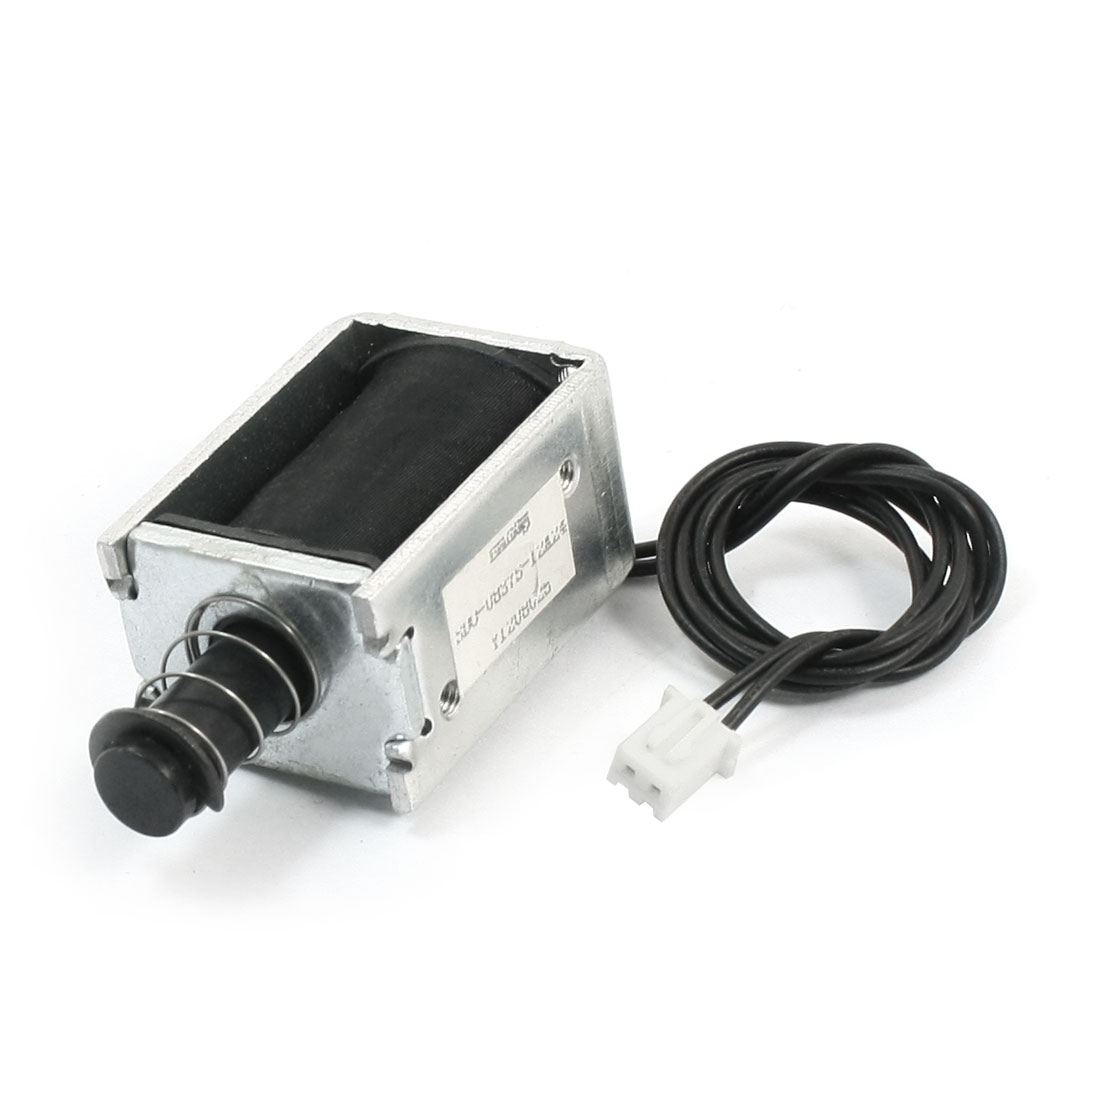 10mm Stroke 500g Force Balance Plug Connector Open Frame Pull Type Spring Loaded Linear Motion Solenoid Electromagnet DC 12V 0.5A 6W